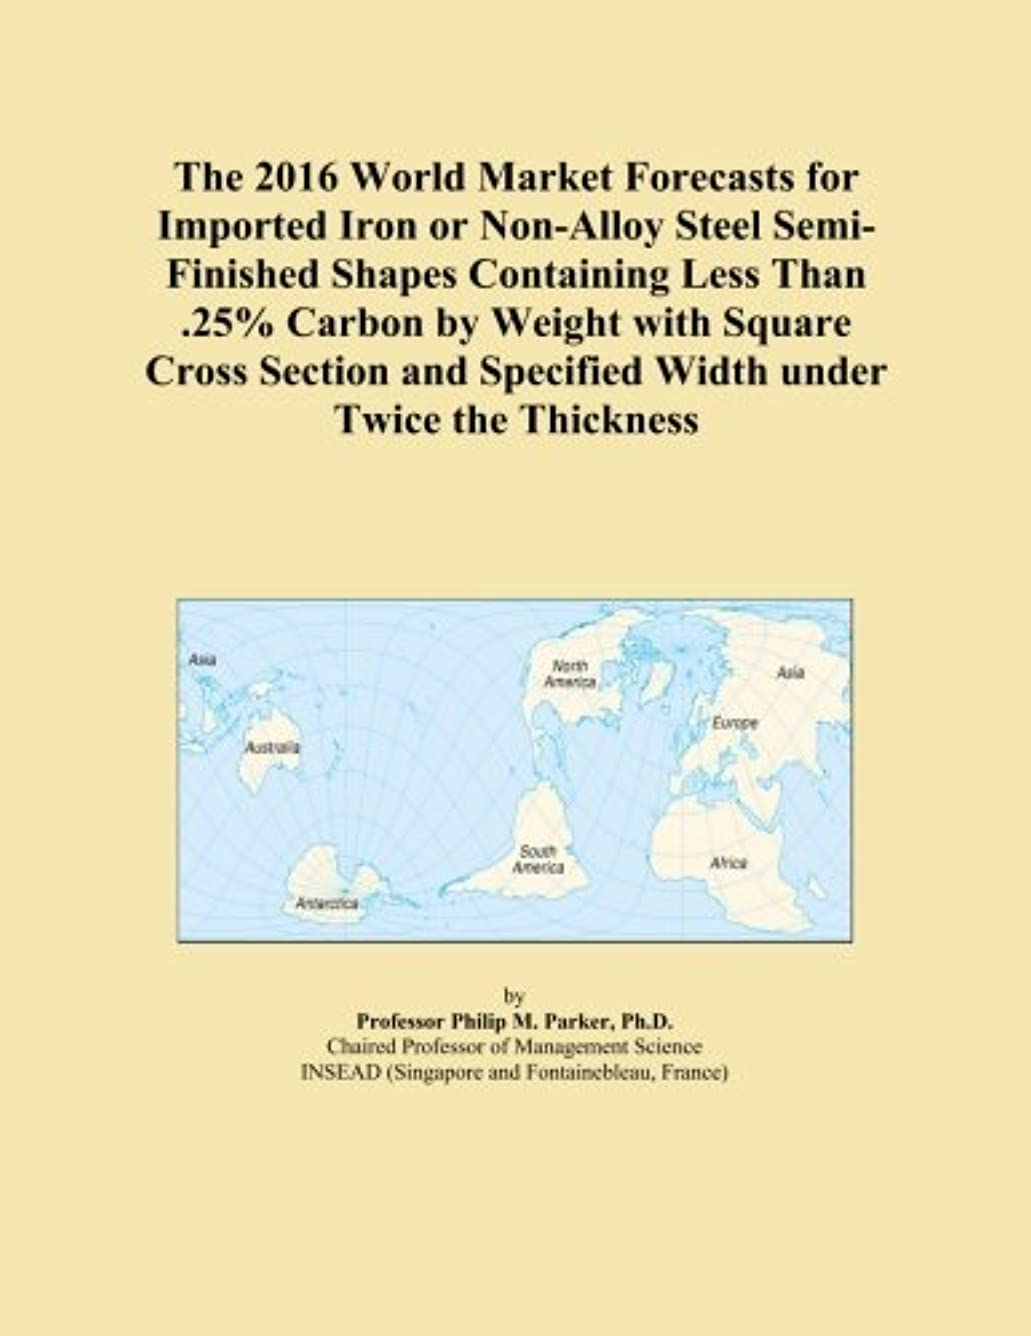 クロス特権イディオムThe 2016 World Market Forecasts for Imported Iron or Non-Alloy Steel Semi-Finished Shapes Containing Less Than .25% Carbon by Weight with Square Cross Section and Specified Width under Twice the Thickness